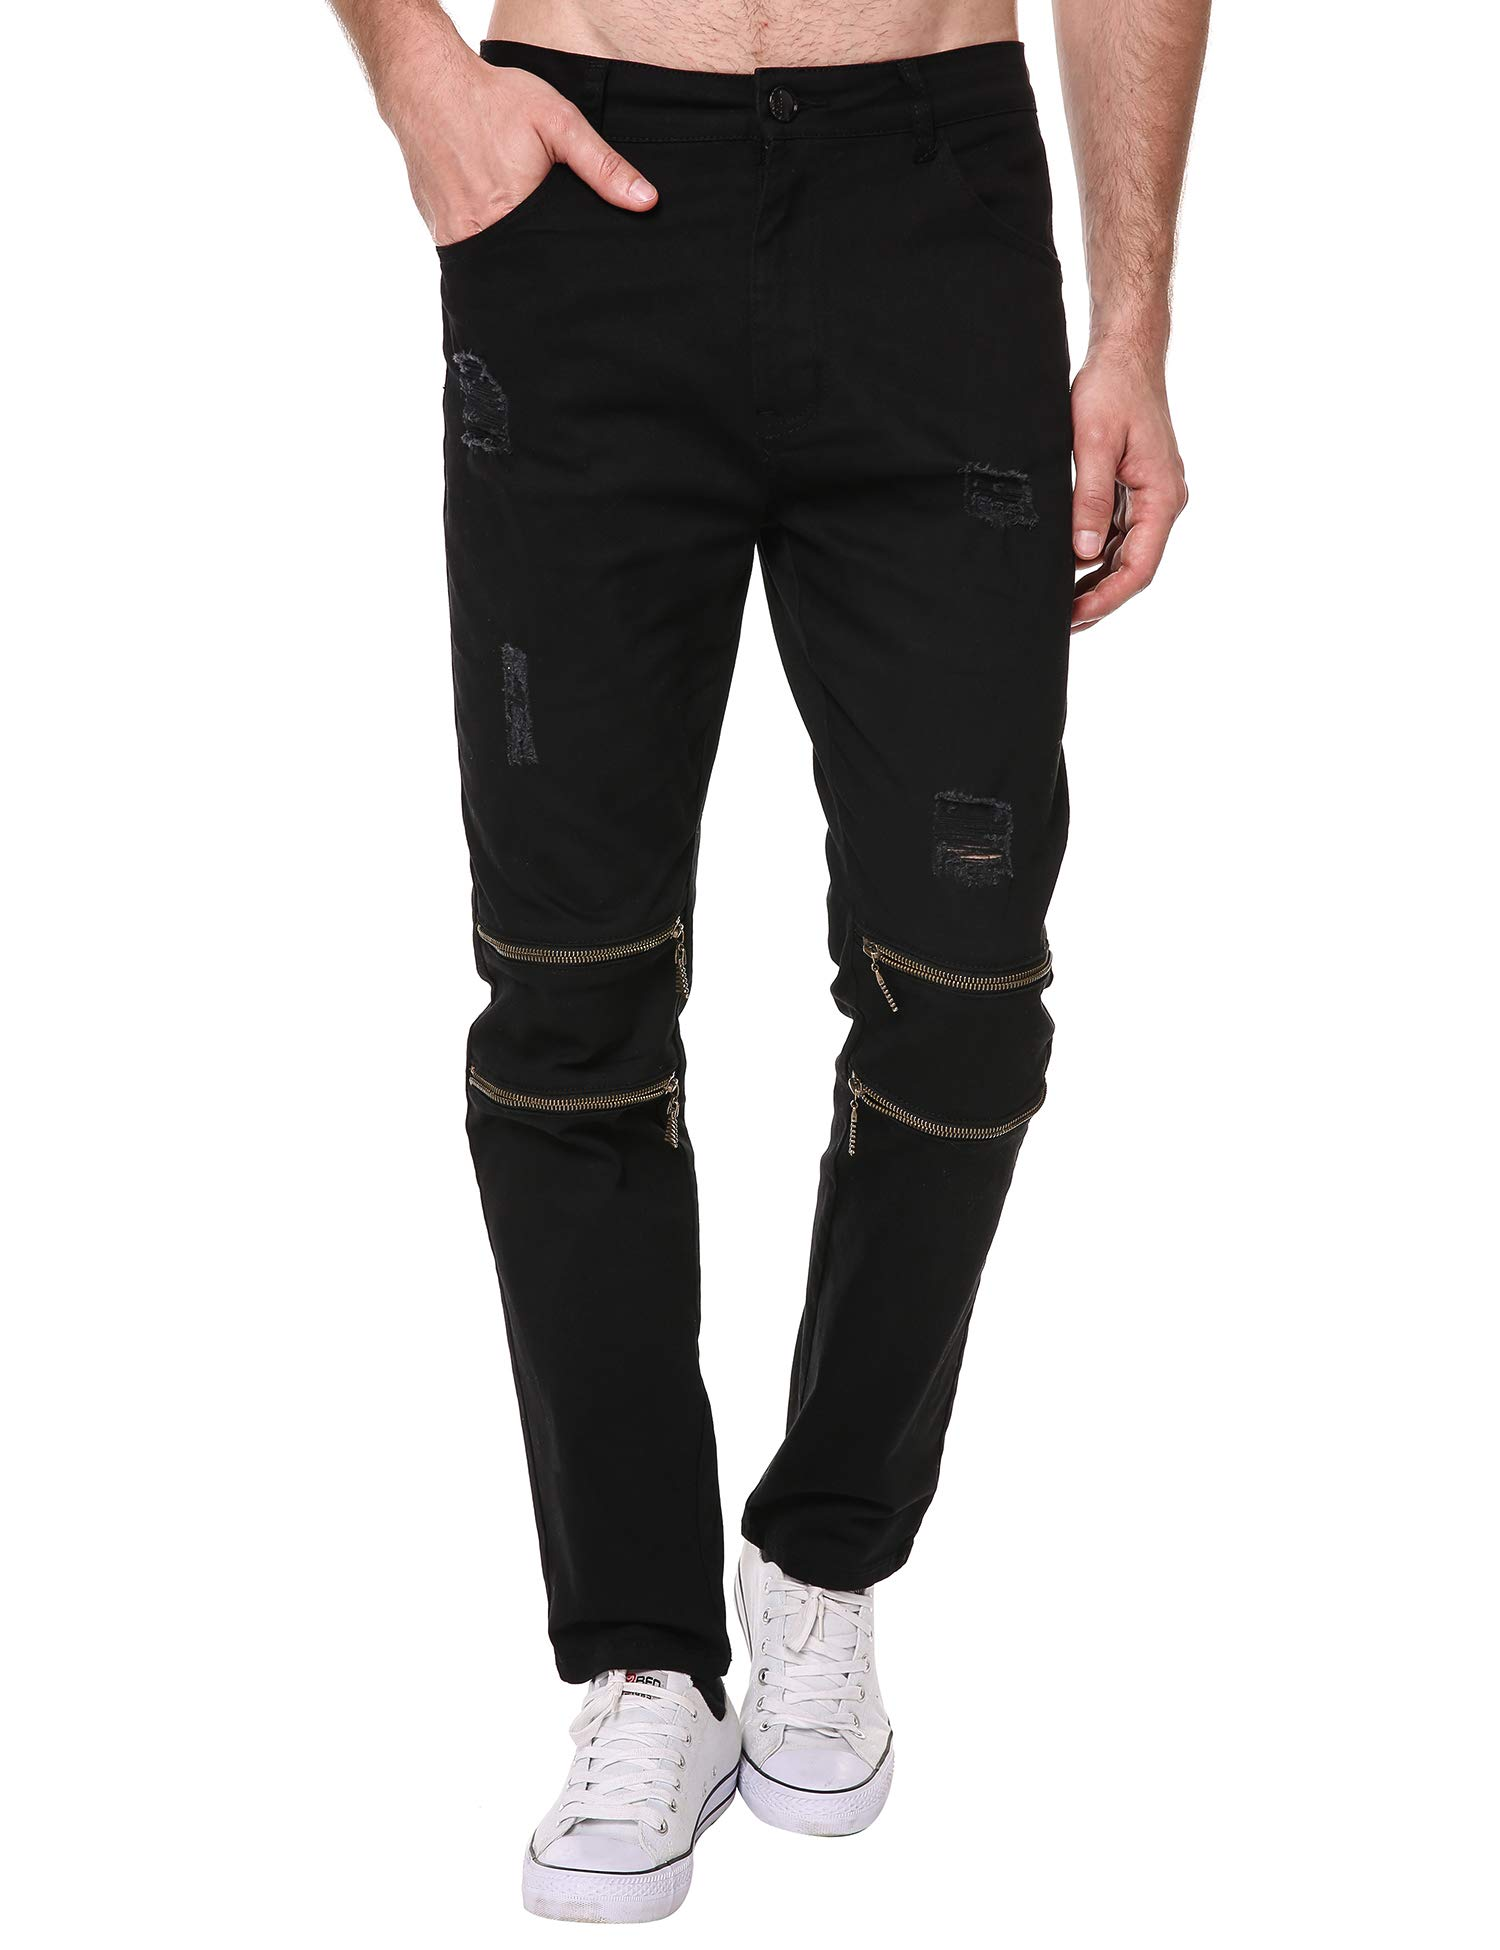 DAZZILYN Mens Slim Fit Stretch Ripped Destroyed Holes Skinny Jeans Zippers Denim Pants